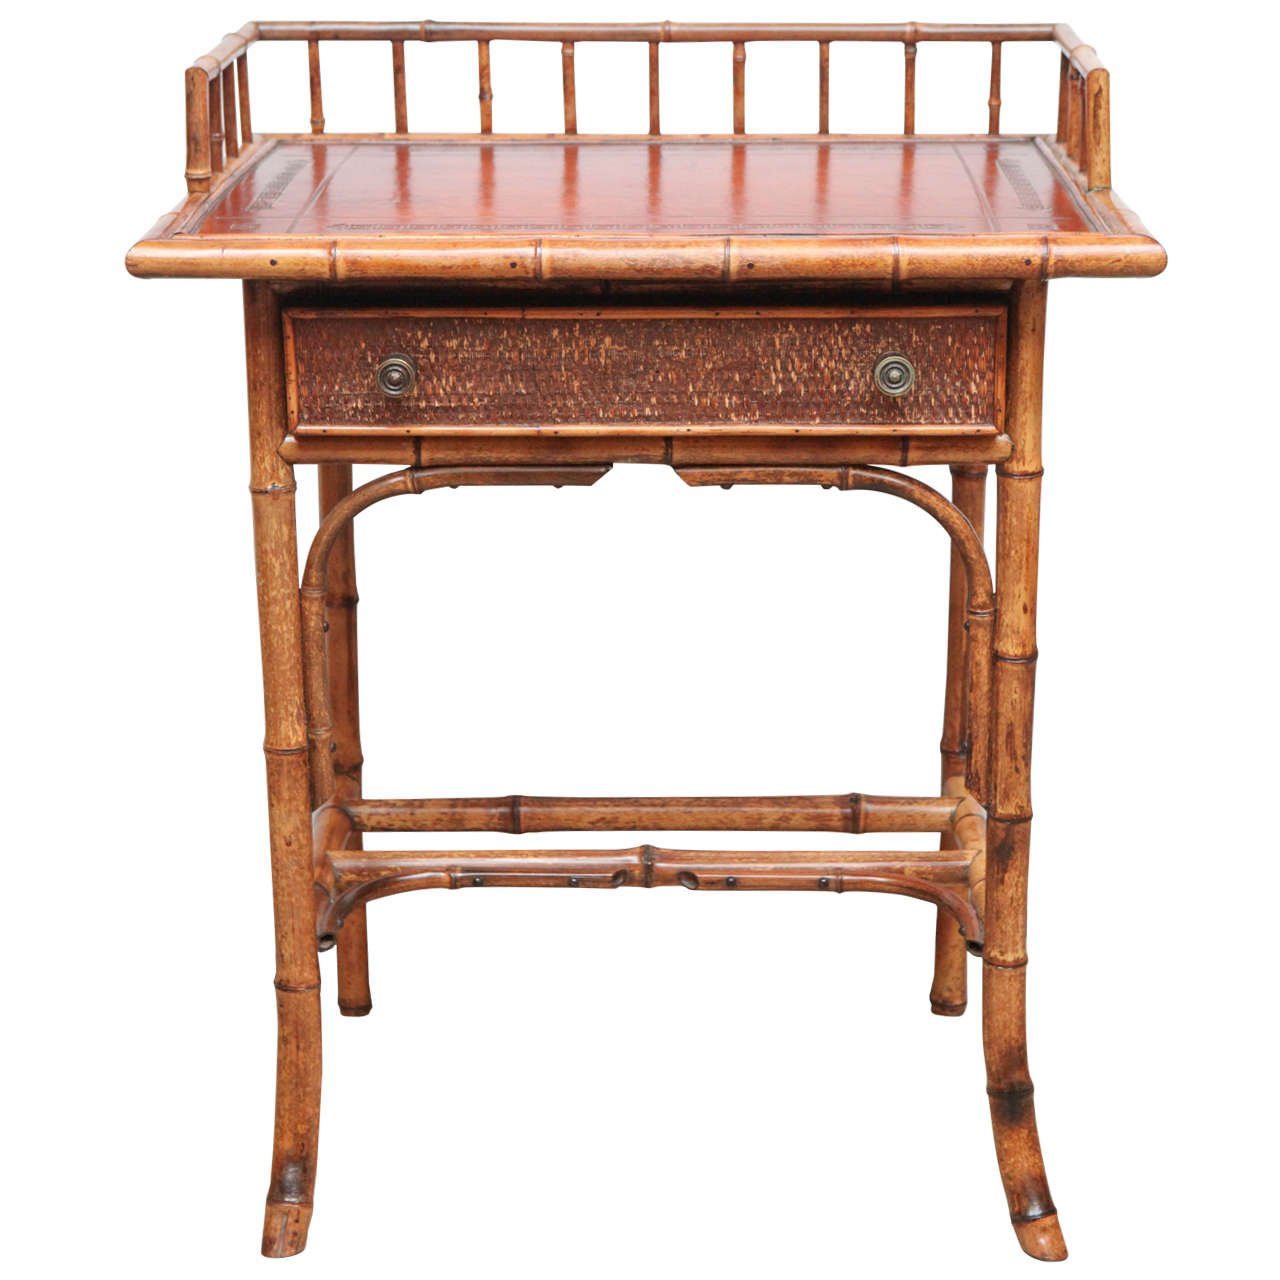 19th Century English Bamboo Writing Table with Single Drawer